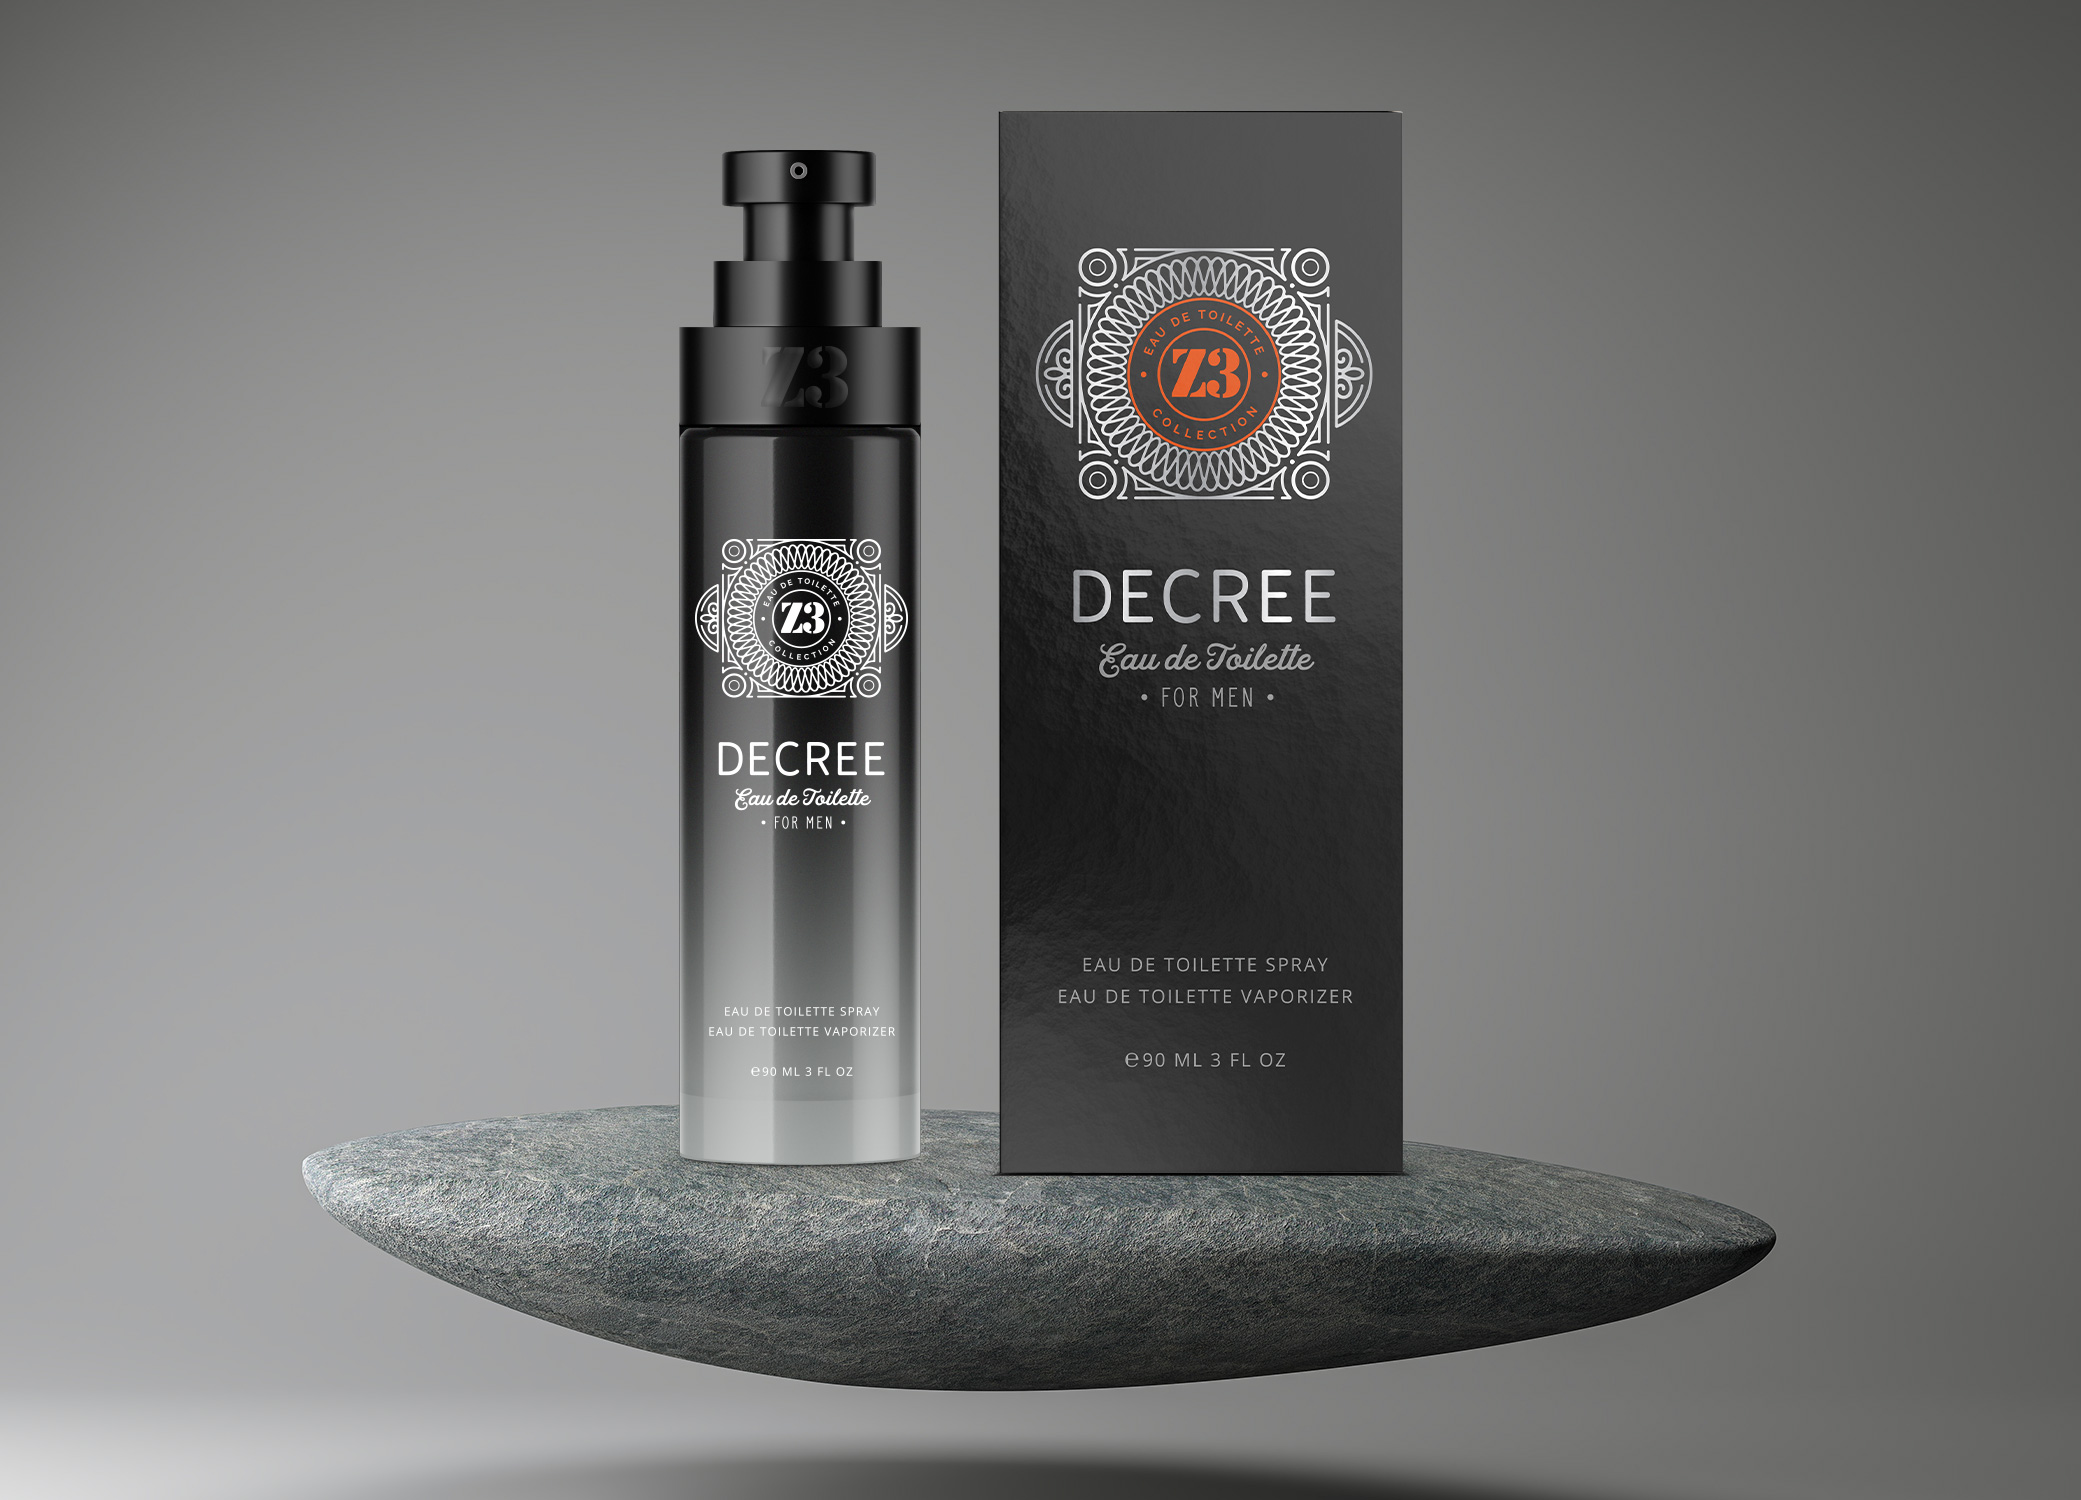 YZY Perfume men's fragrance bottle and package design in black, red, grey, and white for Z3 Decree product.